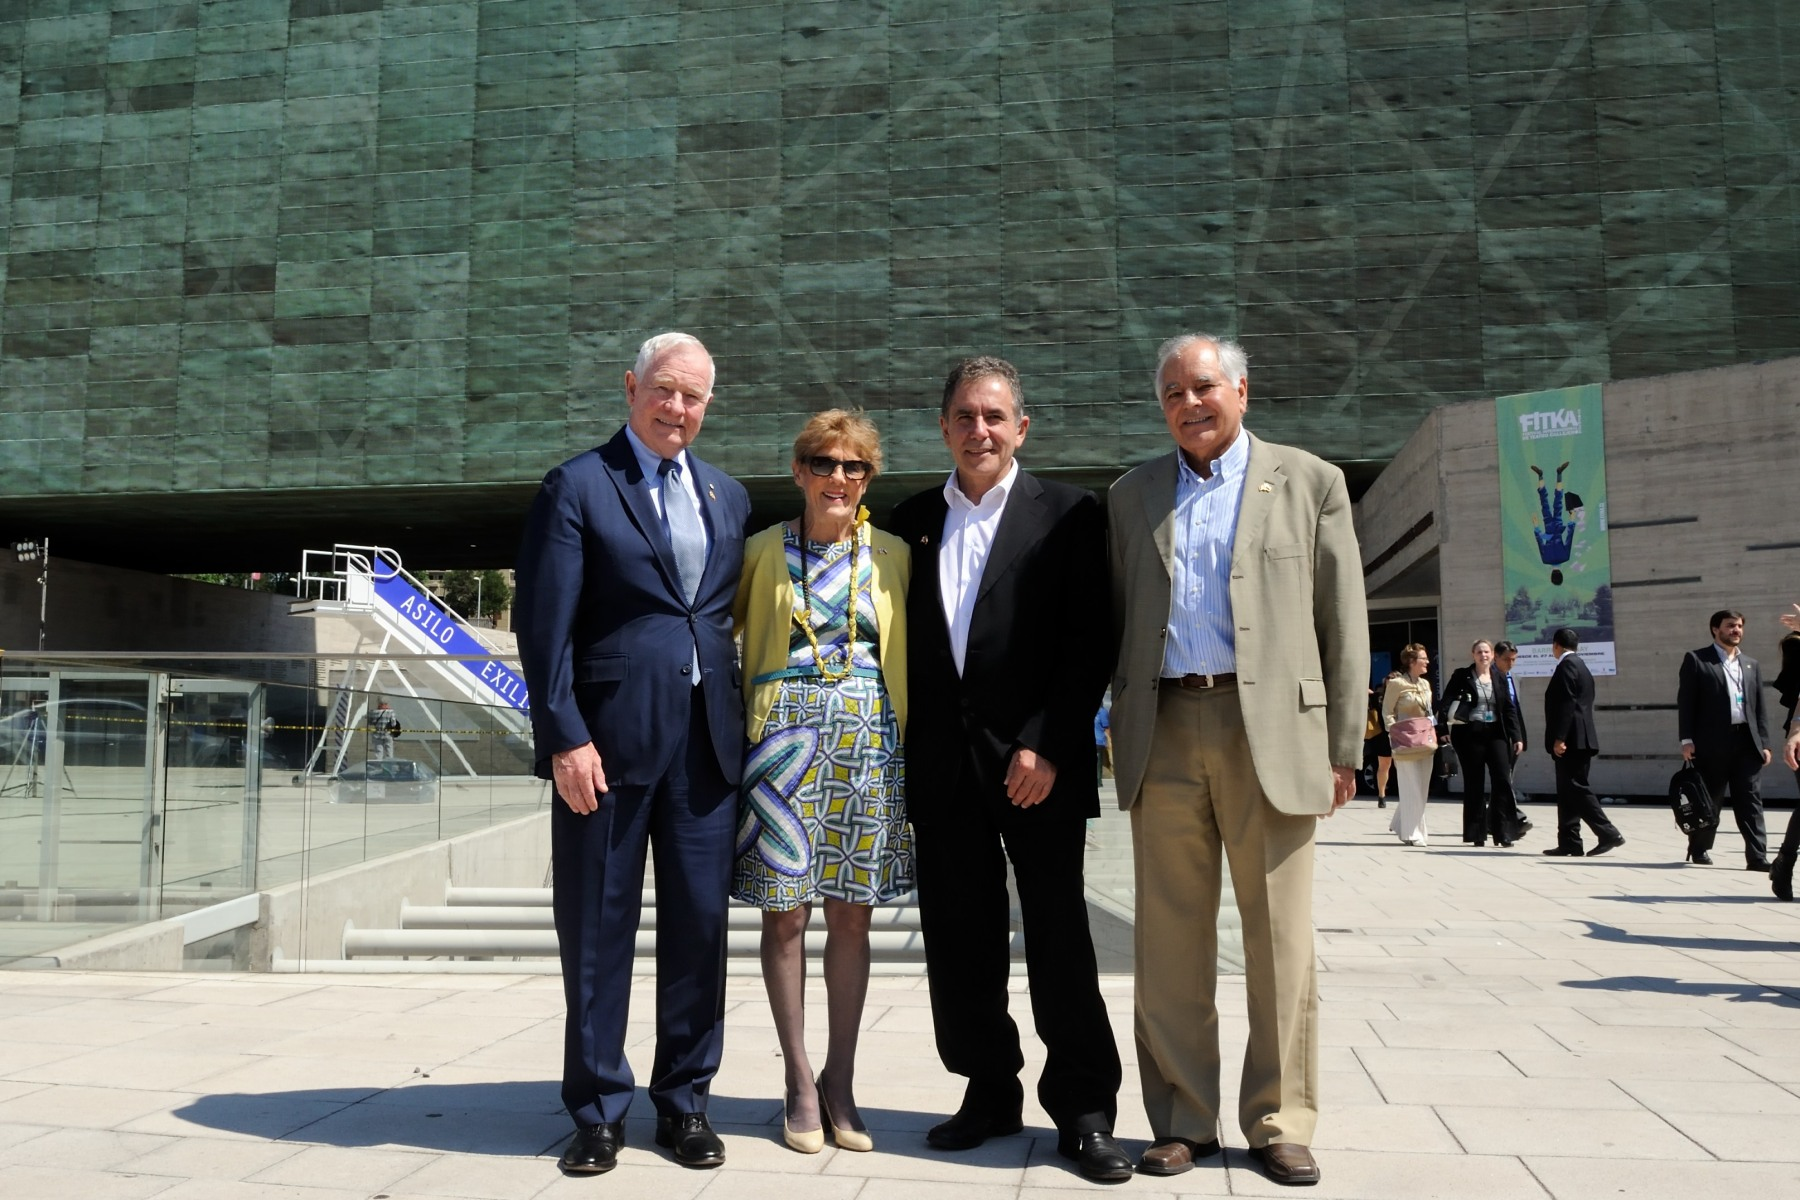 Their Excellencies are seen here, in front of the Museum of Memory and Human Rights, with Mr. Ricardo Brodsky, Executive Director of the Museum (left), and Mr. Rodrigo Molina, President of the Chile-Quebec Friendship House (right).